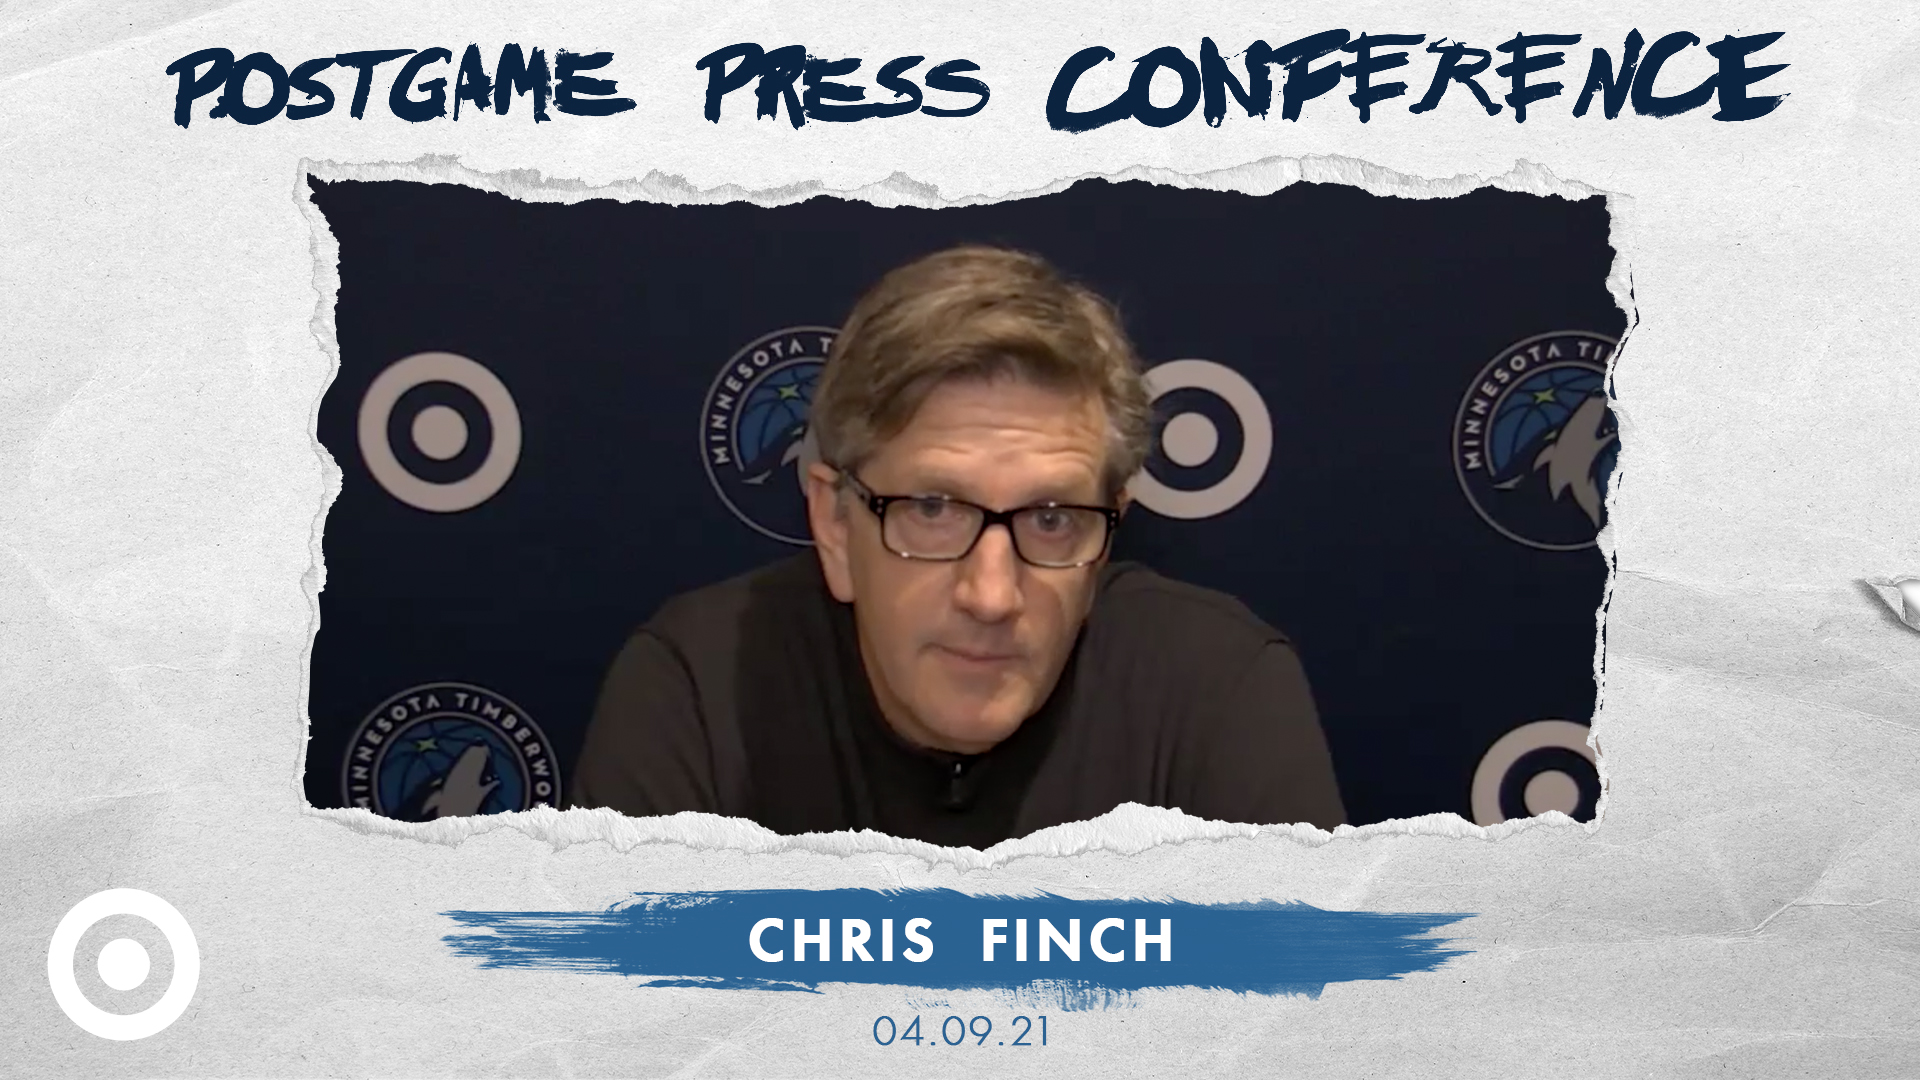 Chris Finch Postgame Press Conference - April 9, 2021